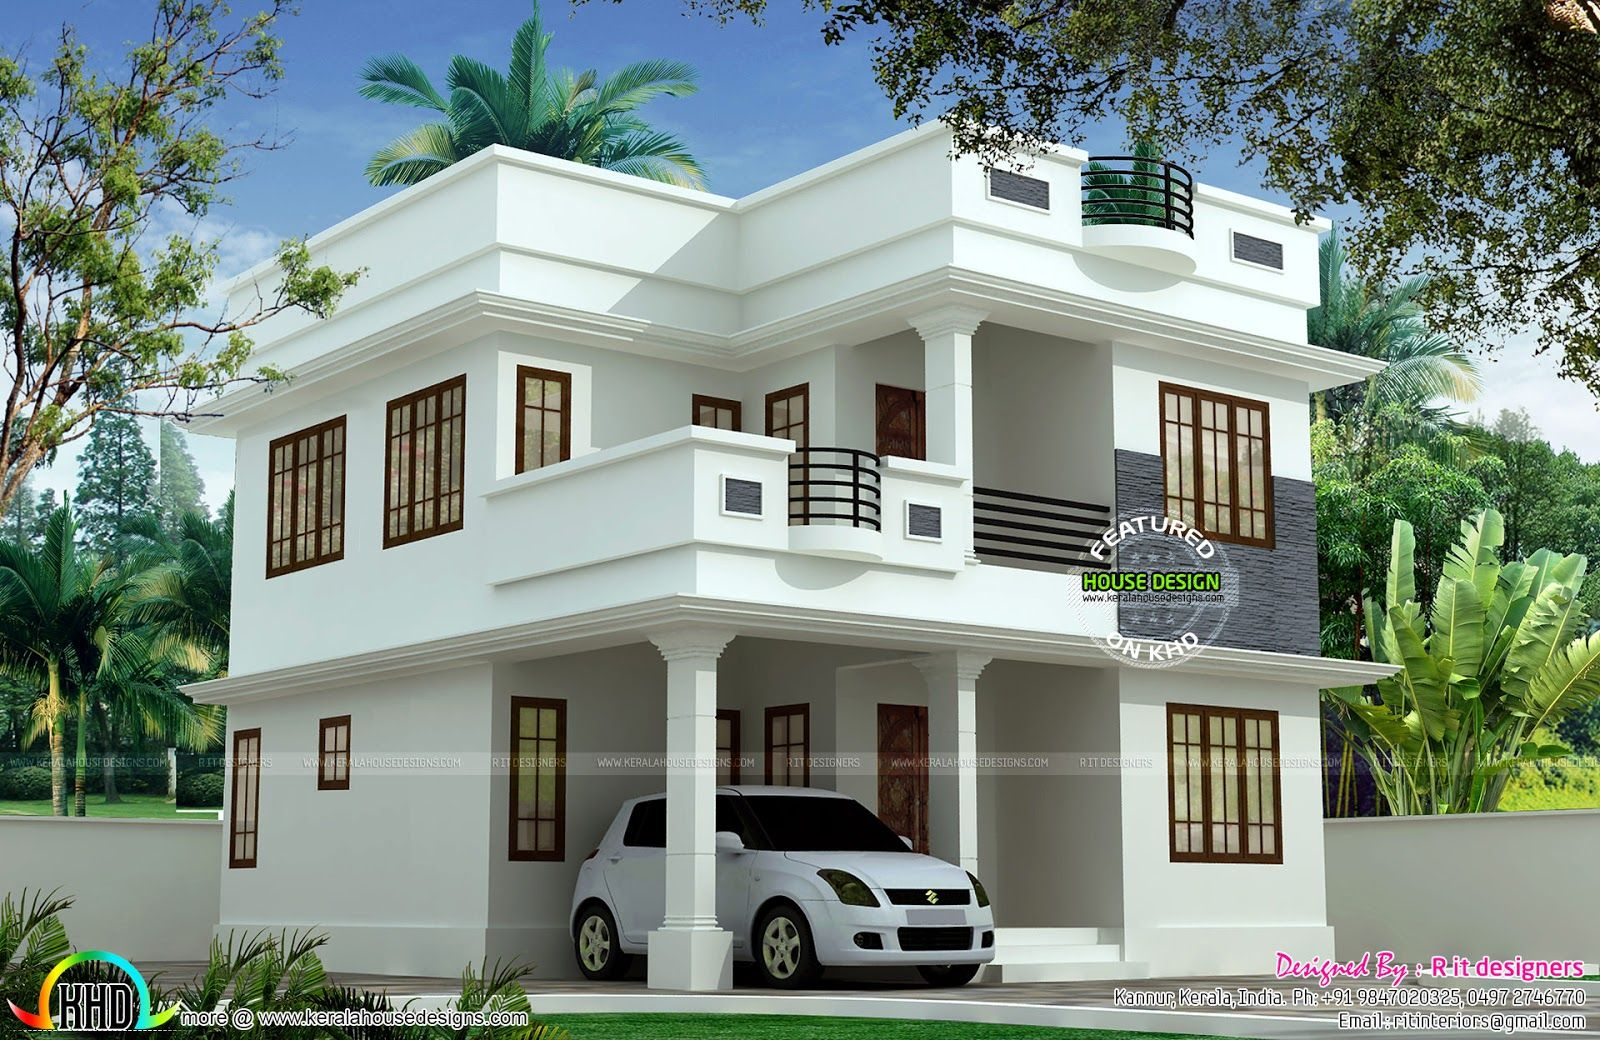 1897 Sq Ft Cute Double Storied House Kerala House Design